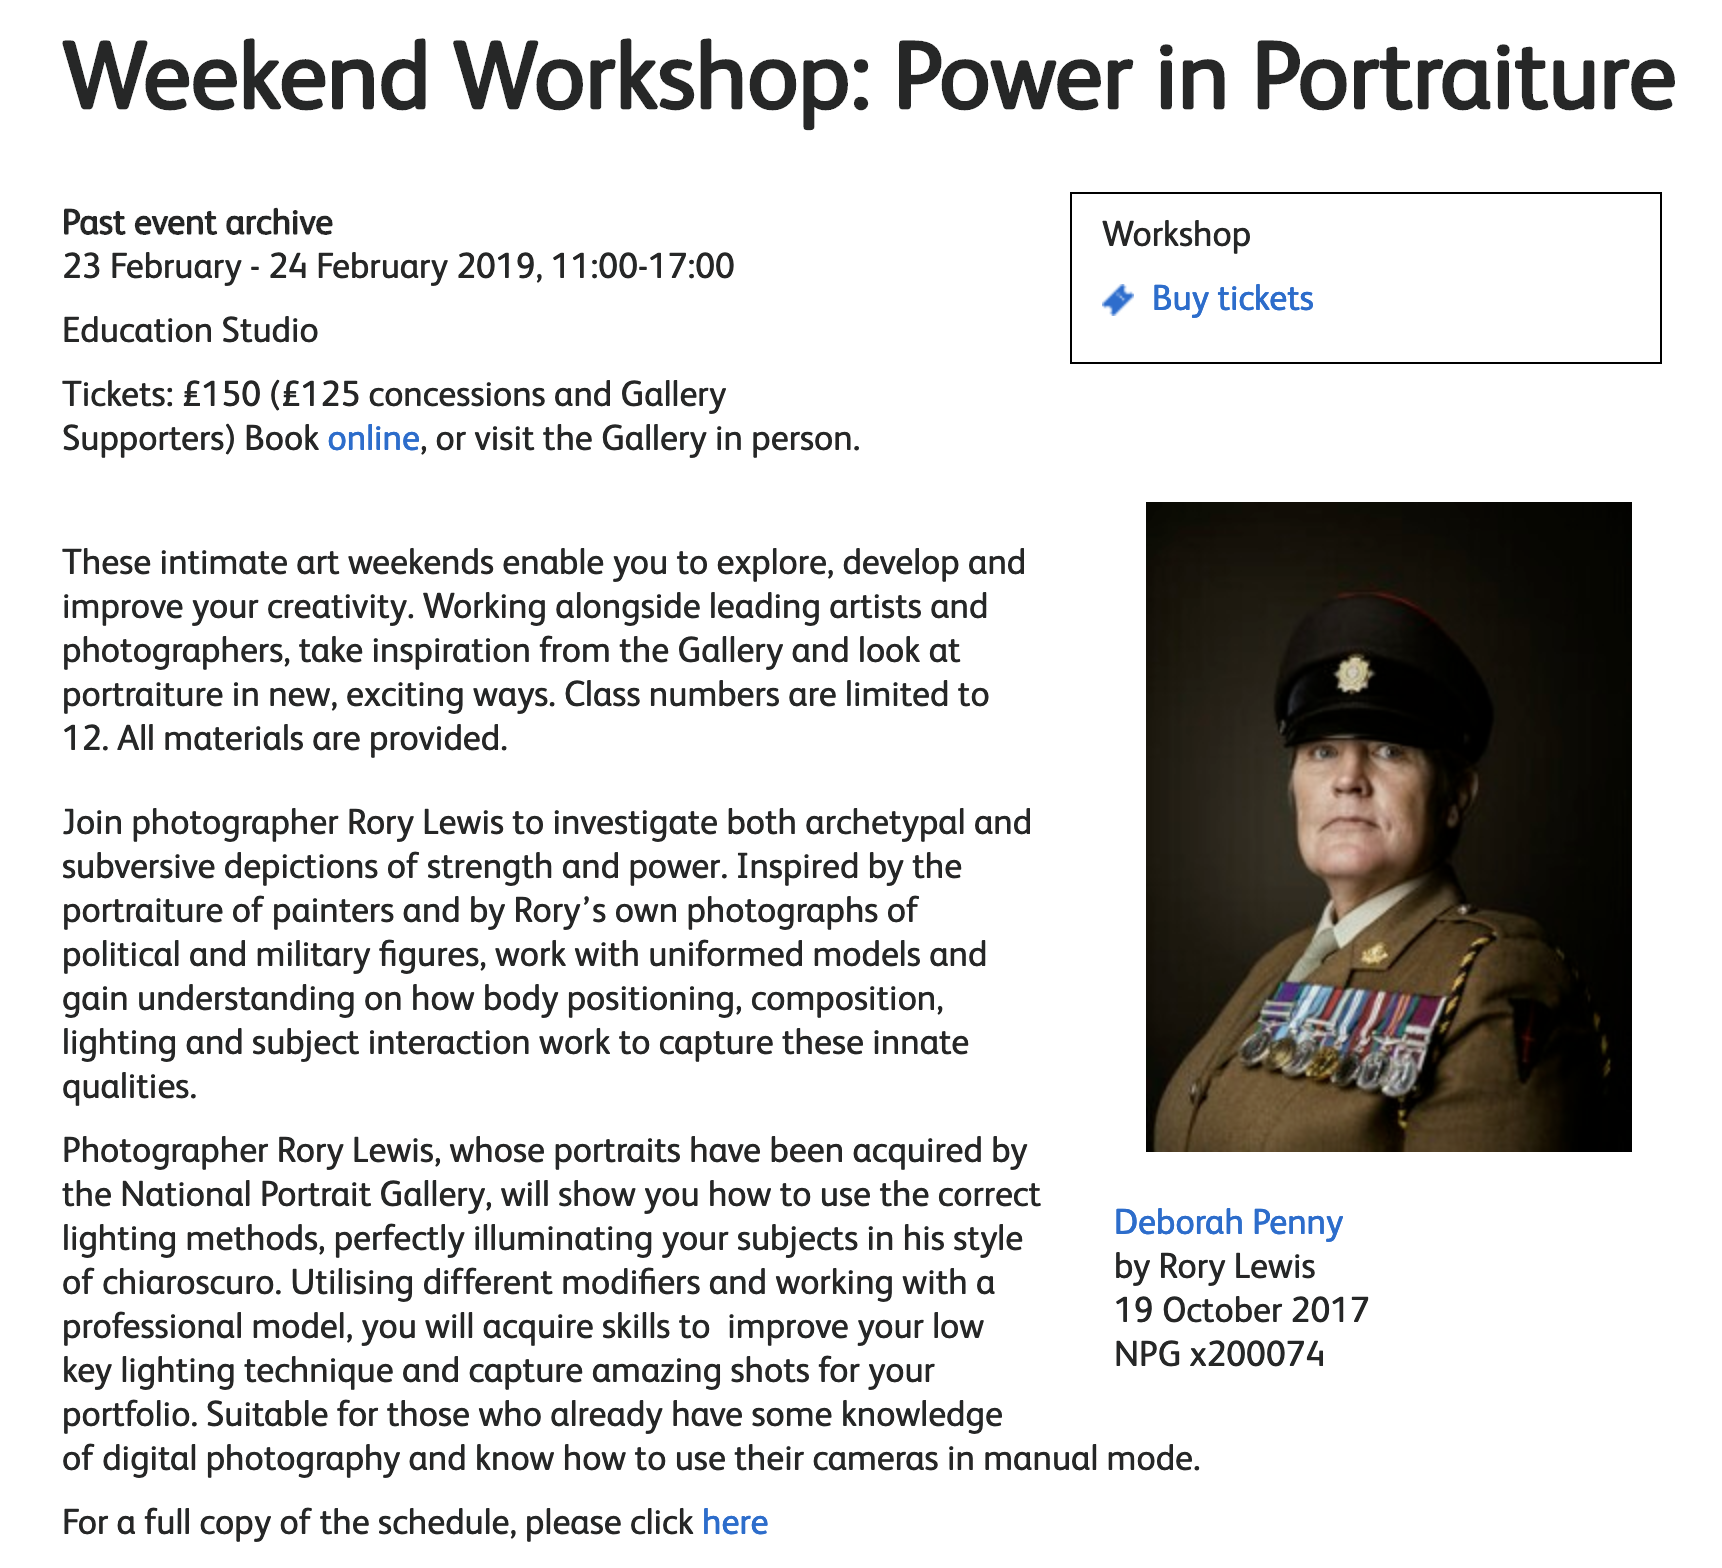 Weekend Workshop: Power in Portraiture (Rory Lewis)